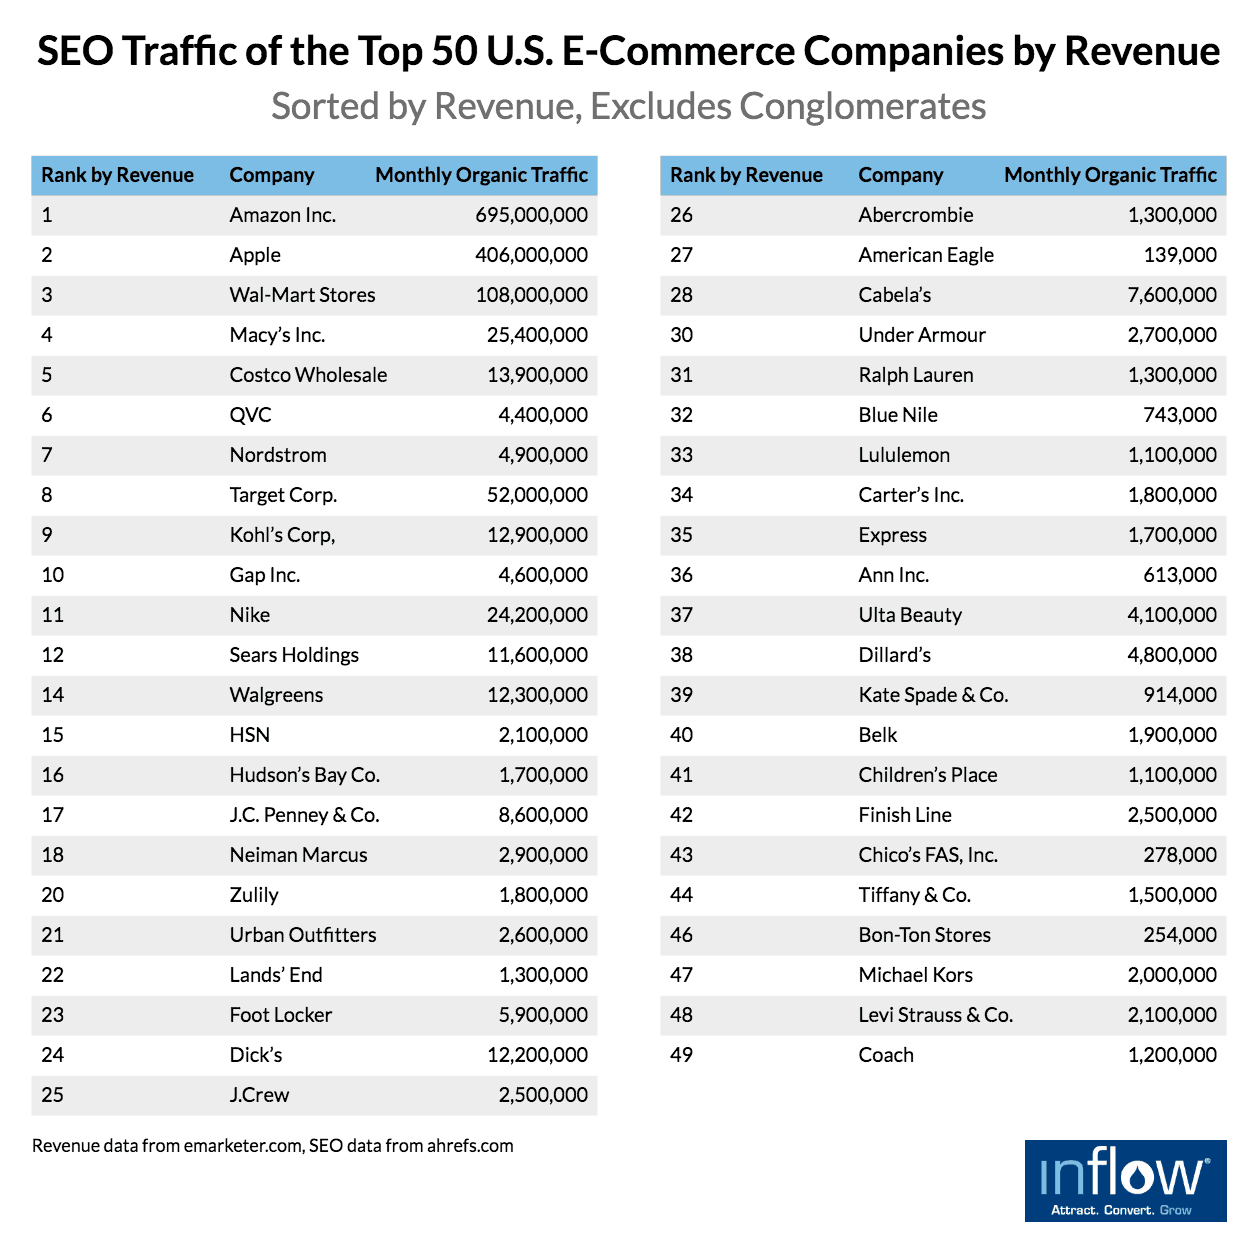 SEO Traffic for the Top 50 eCommerce Companies by Revenue